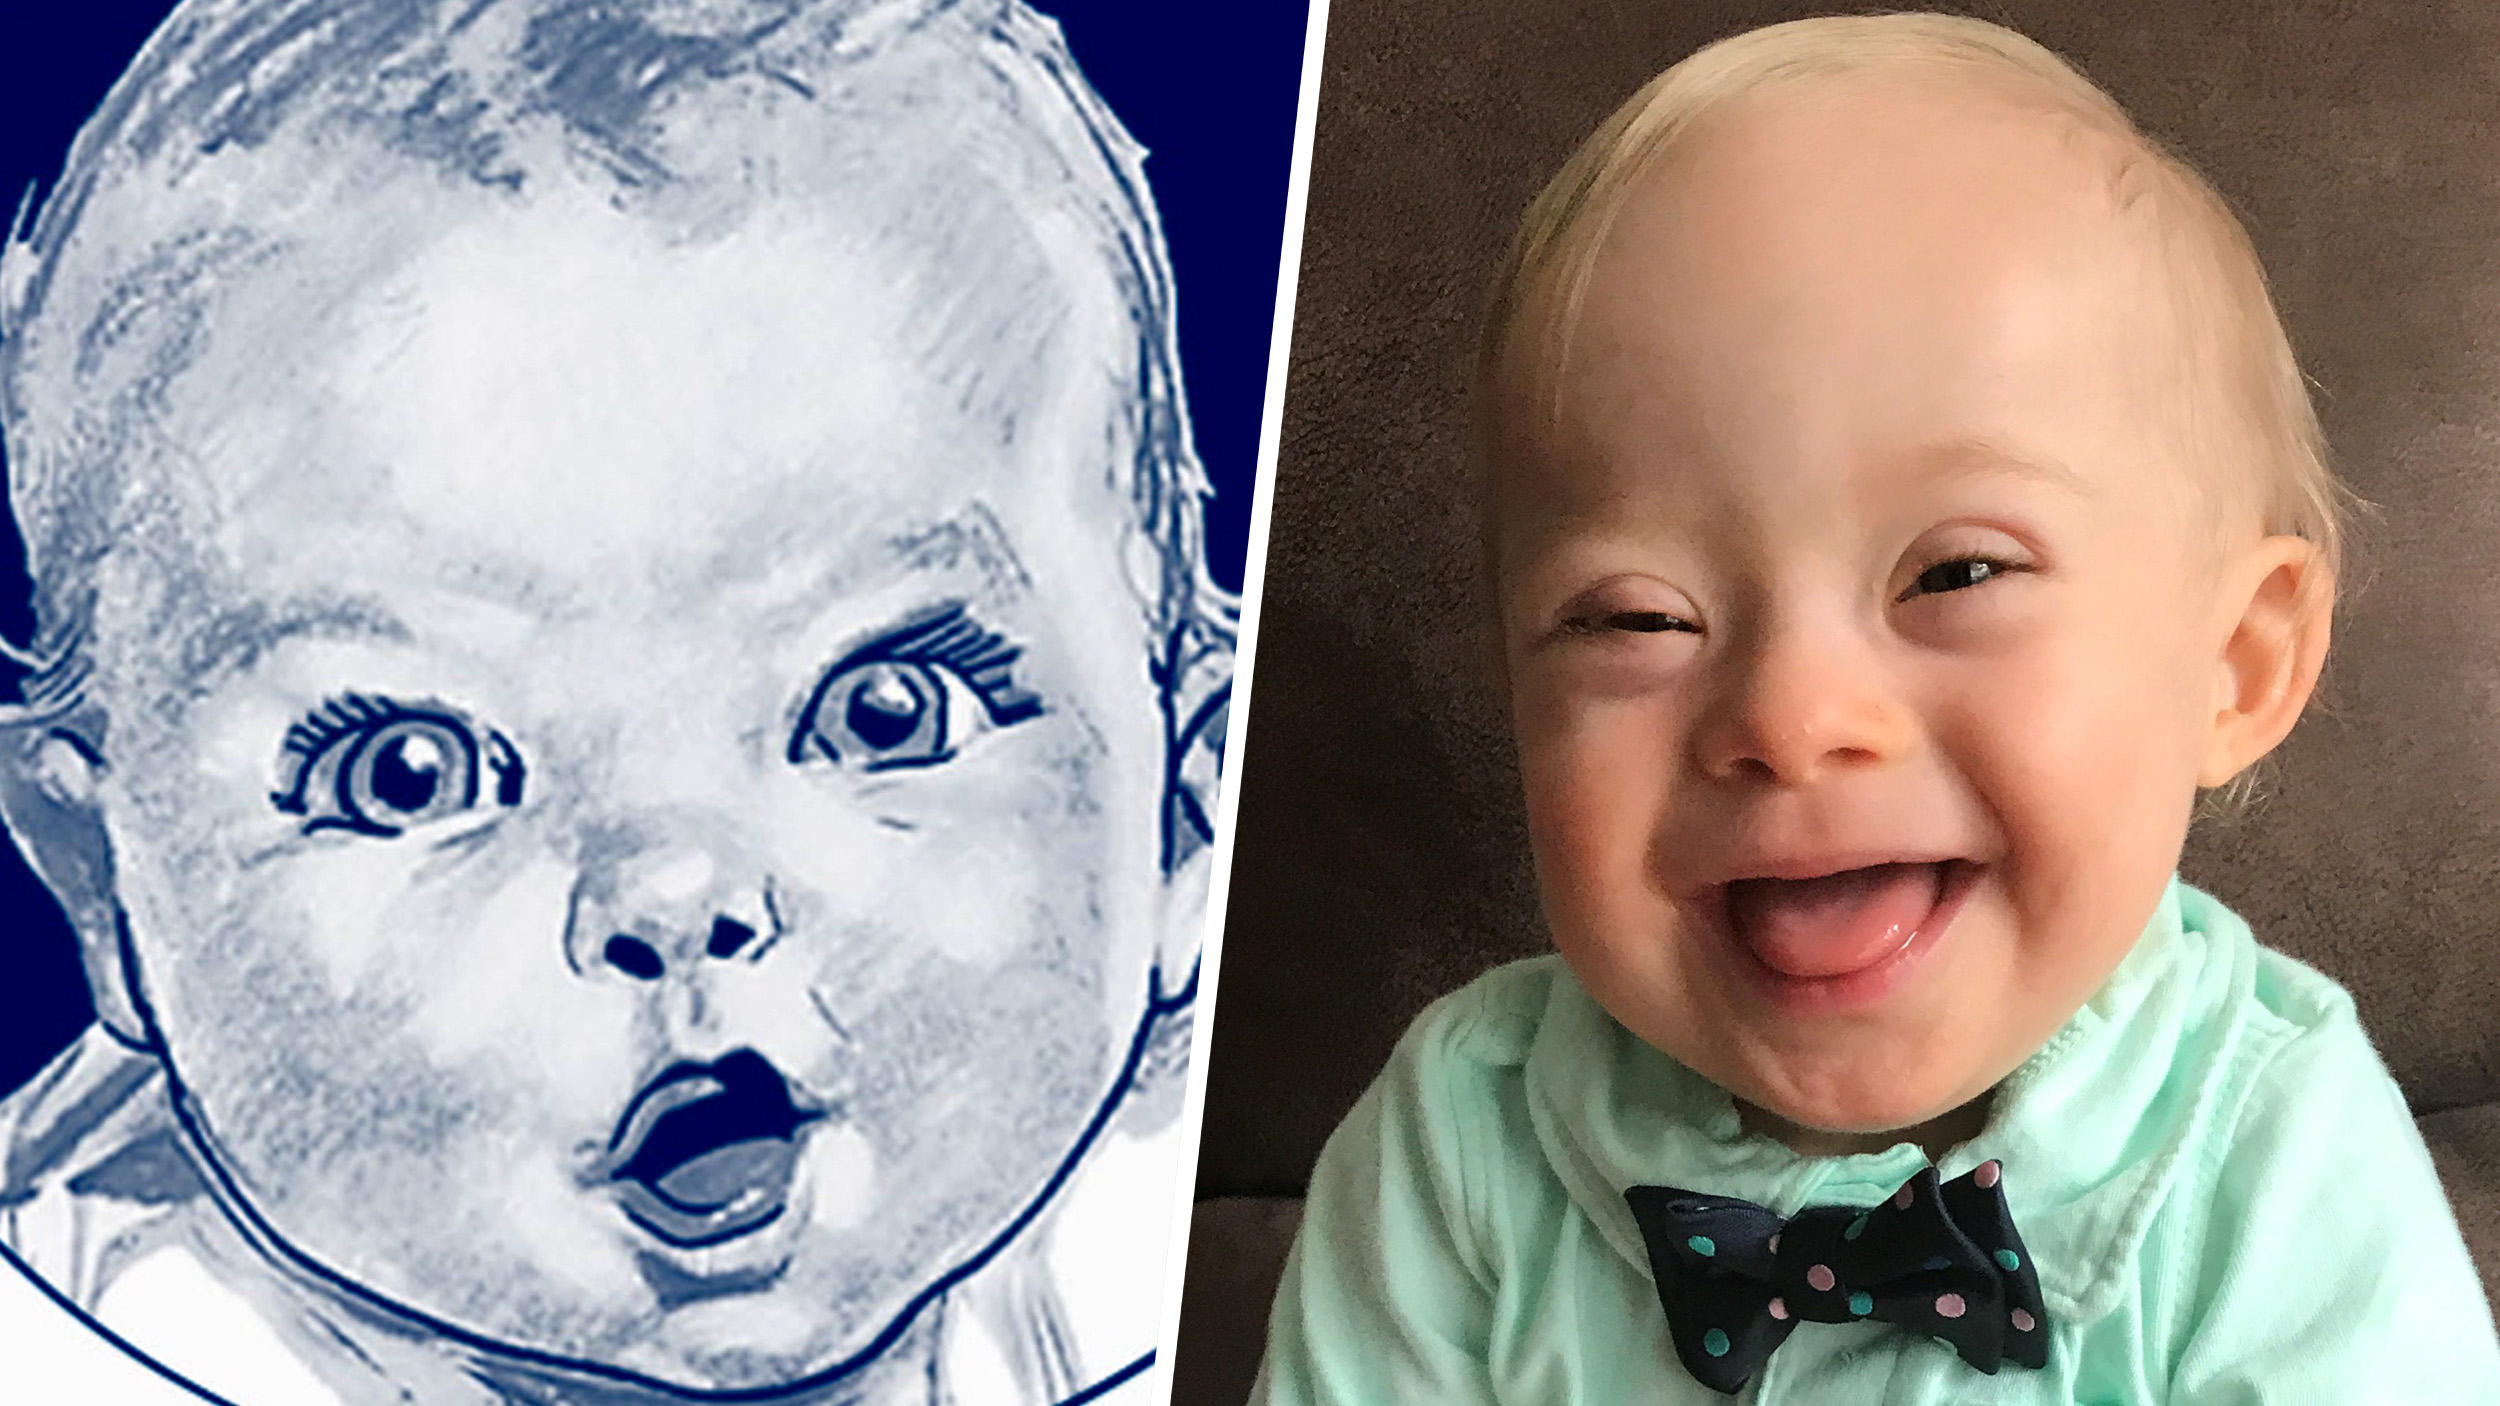 2018 gerber baby is first gerber baby with down syndrome - today